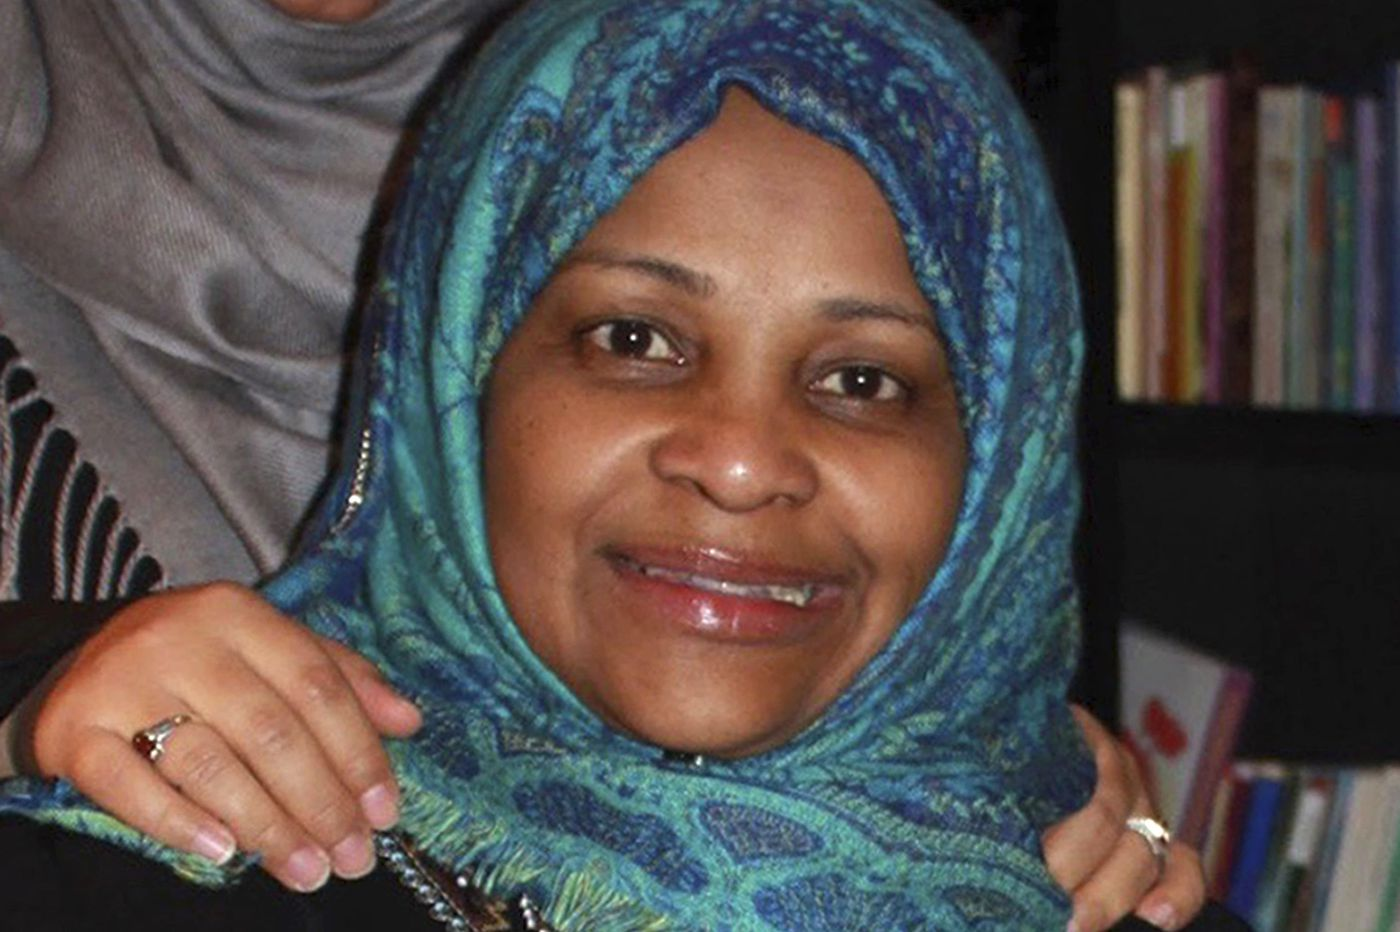 Iran claims USA has detained journalist Marzieh Hashemi